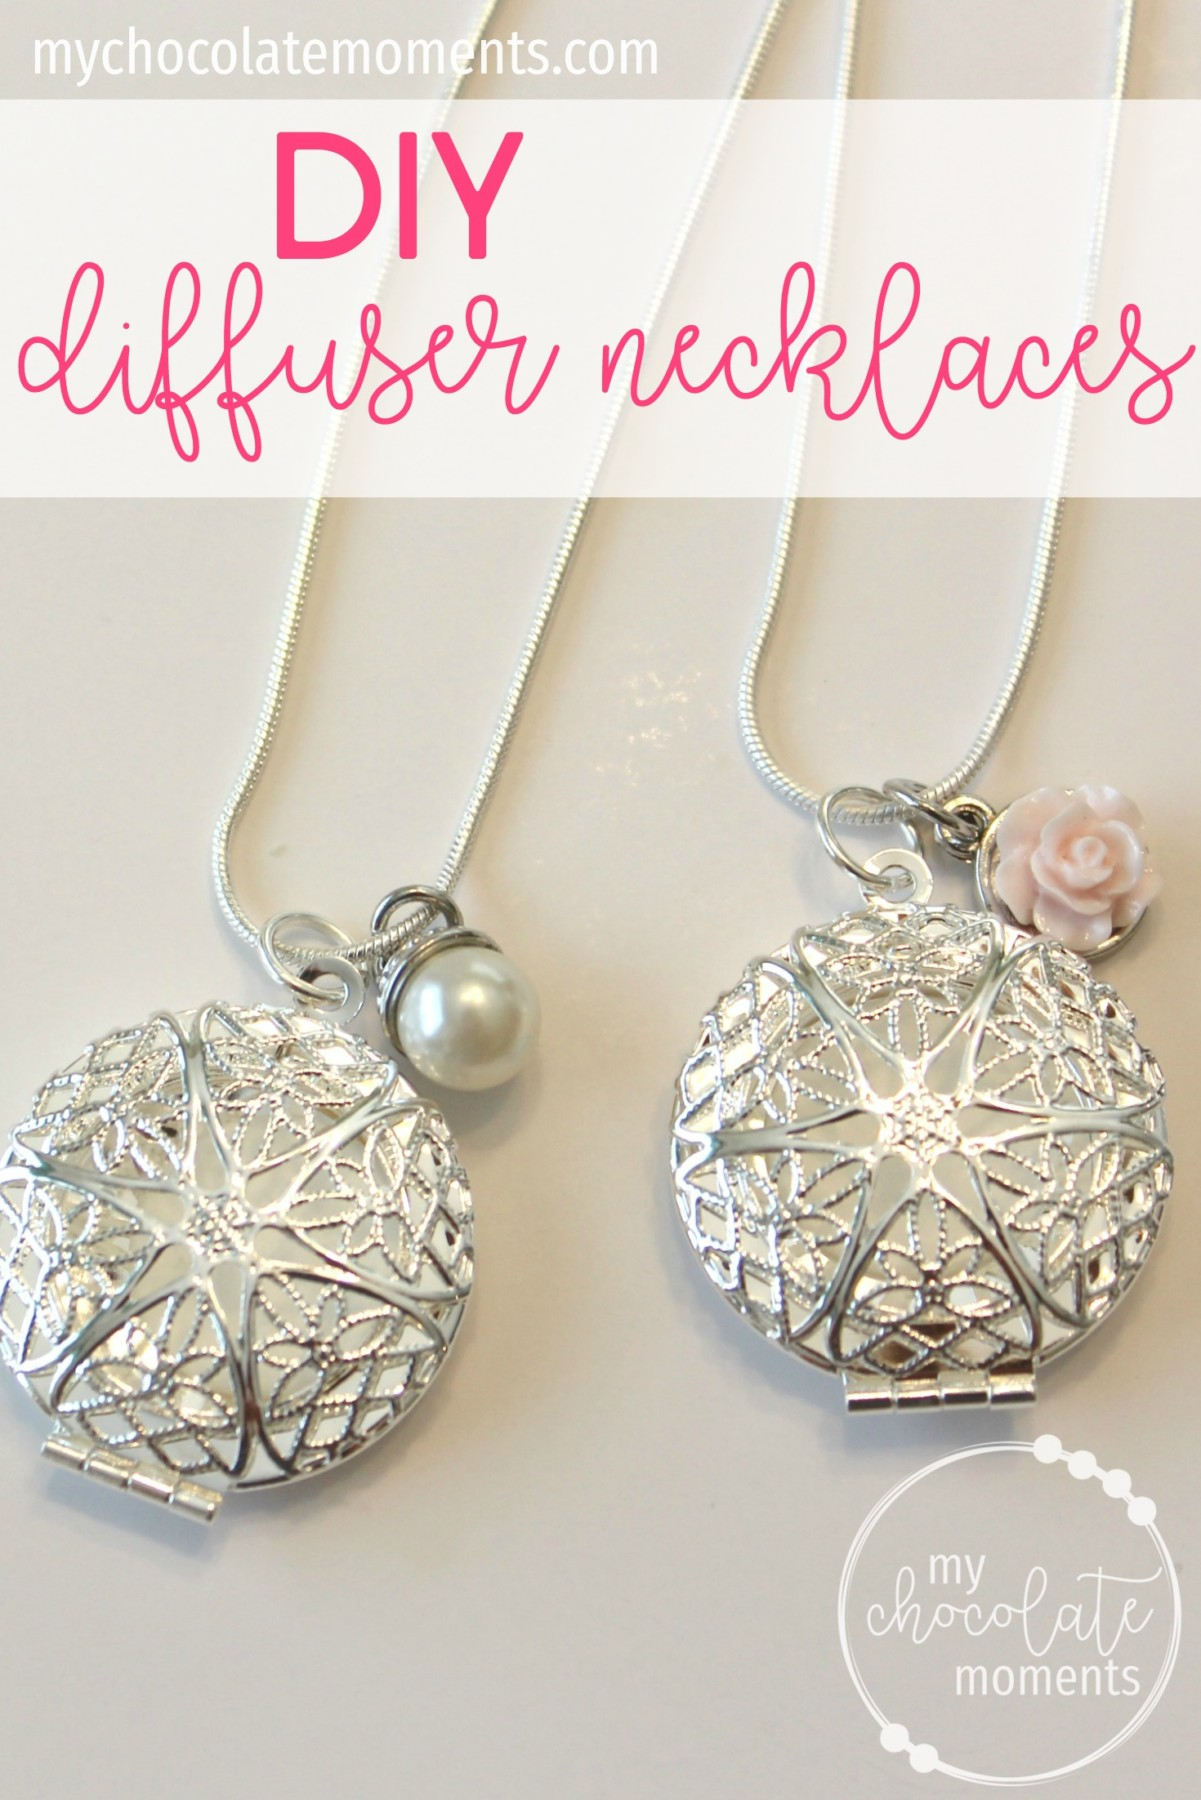 DIY diffuser necklaces | supplies, instructions, and how to